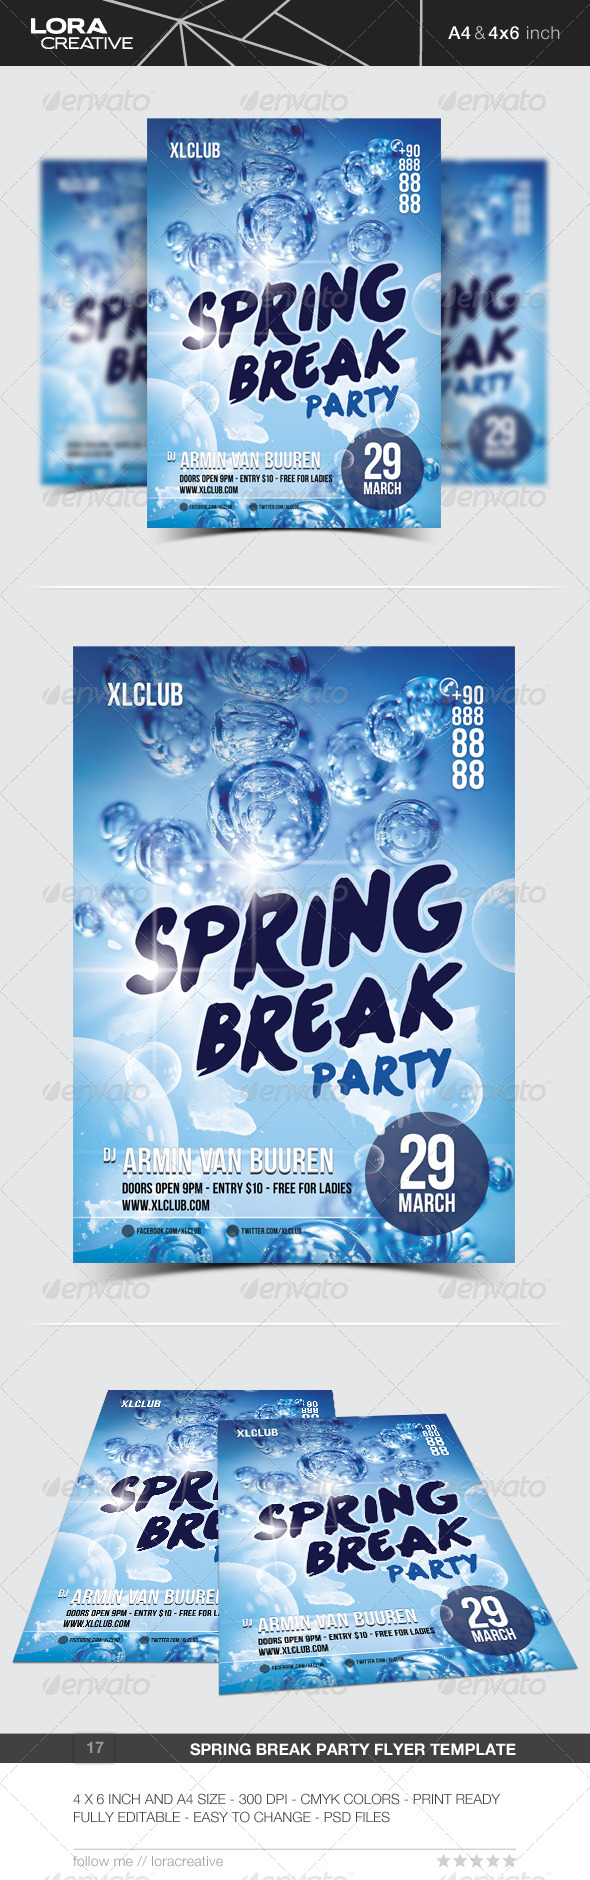 GraphicRiver Spring Break Party Flyer Poster 17 7177856